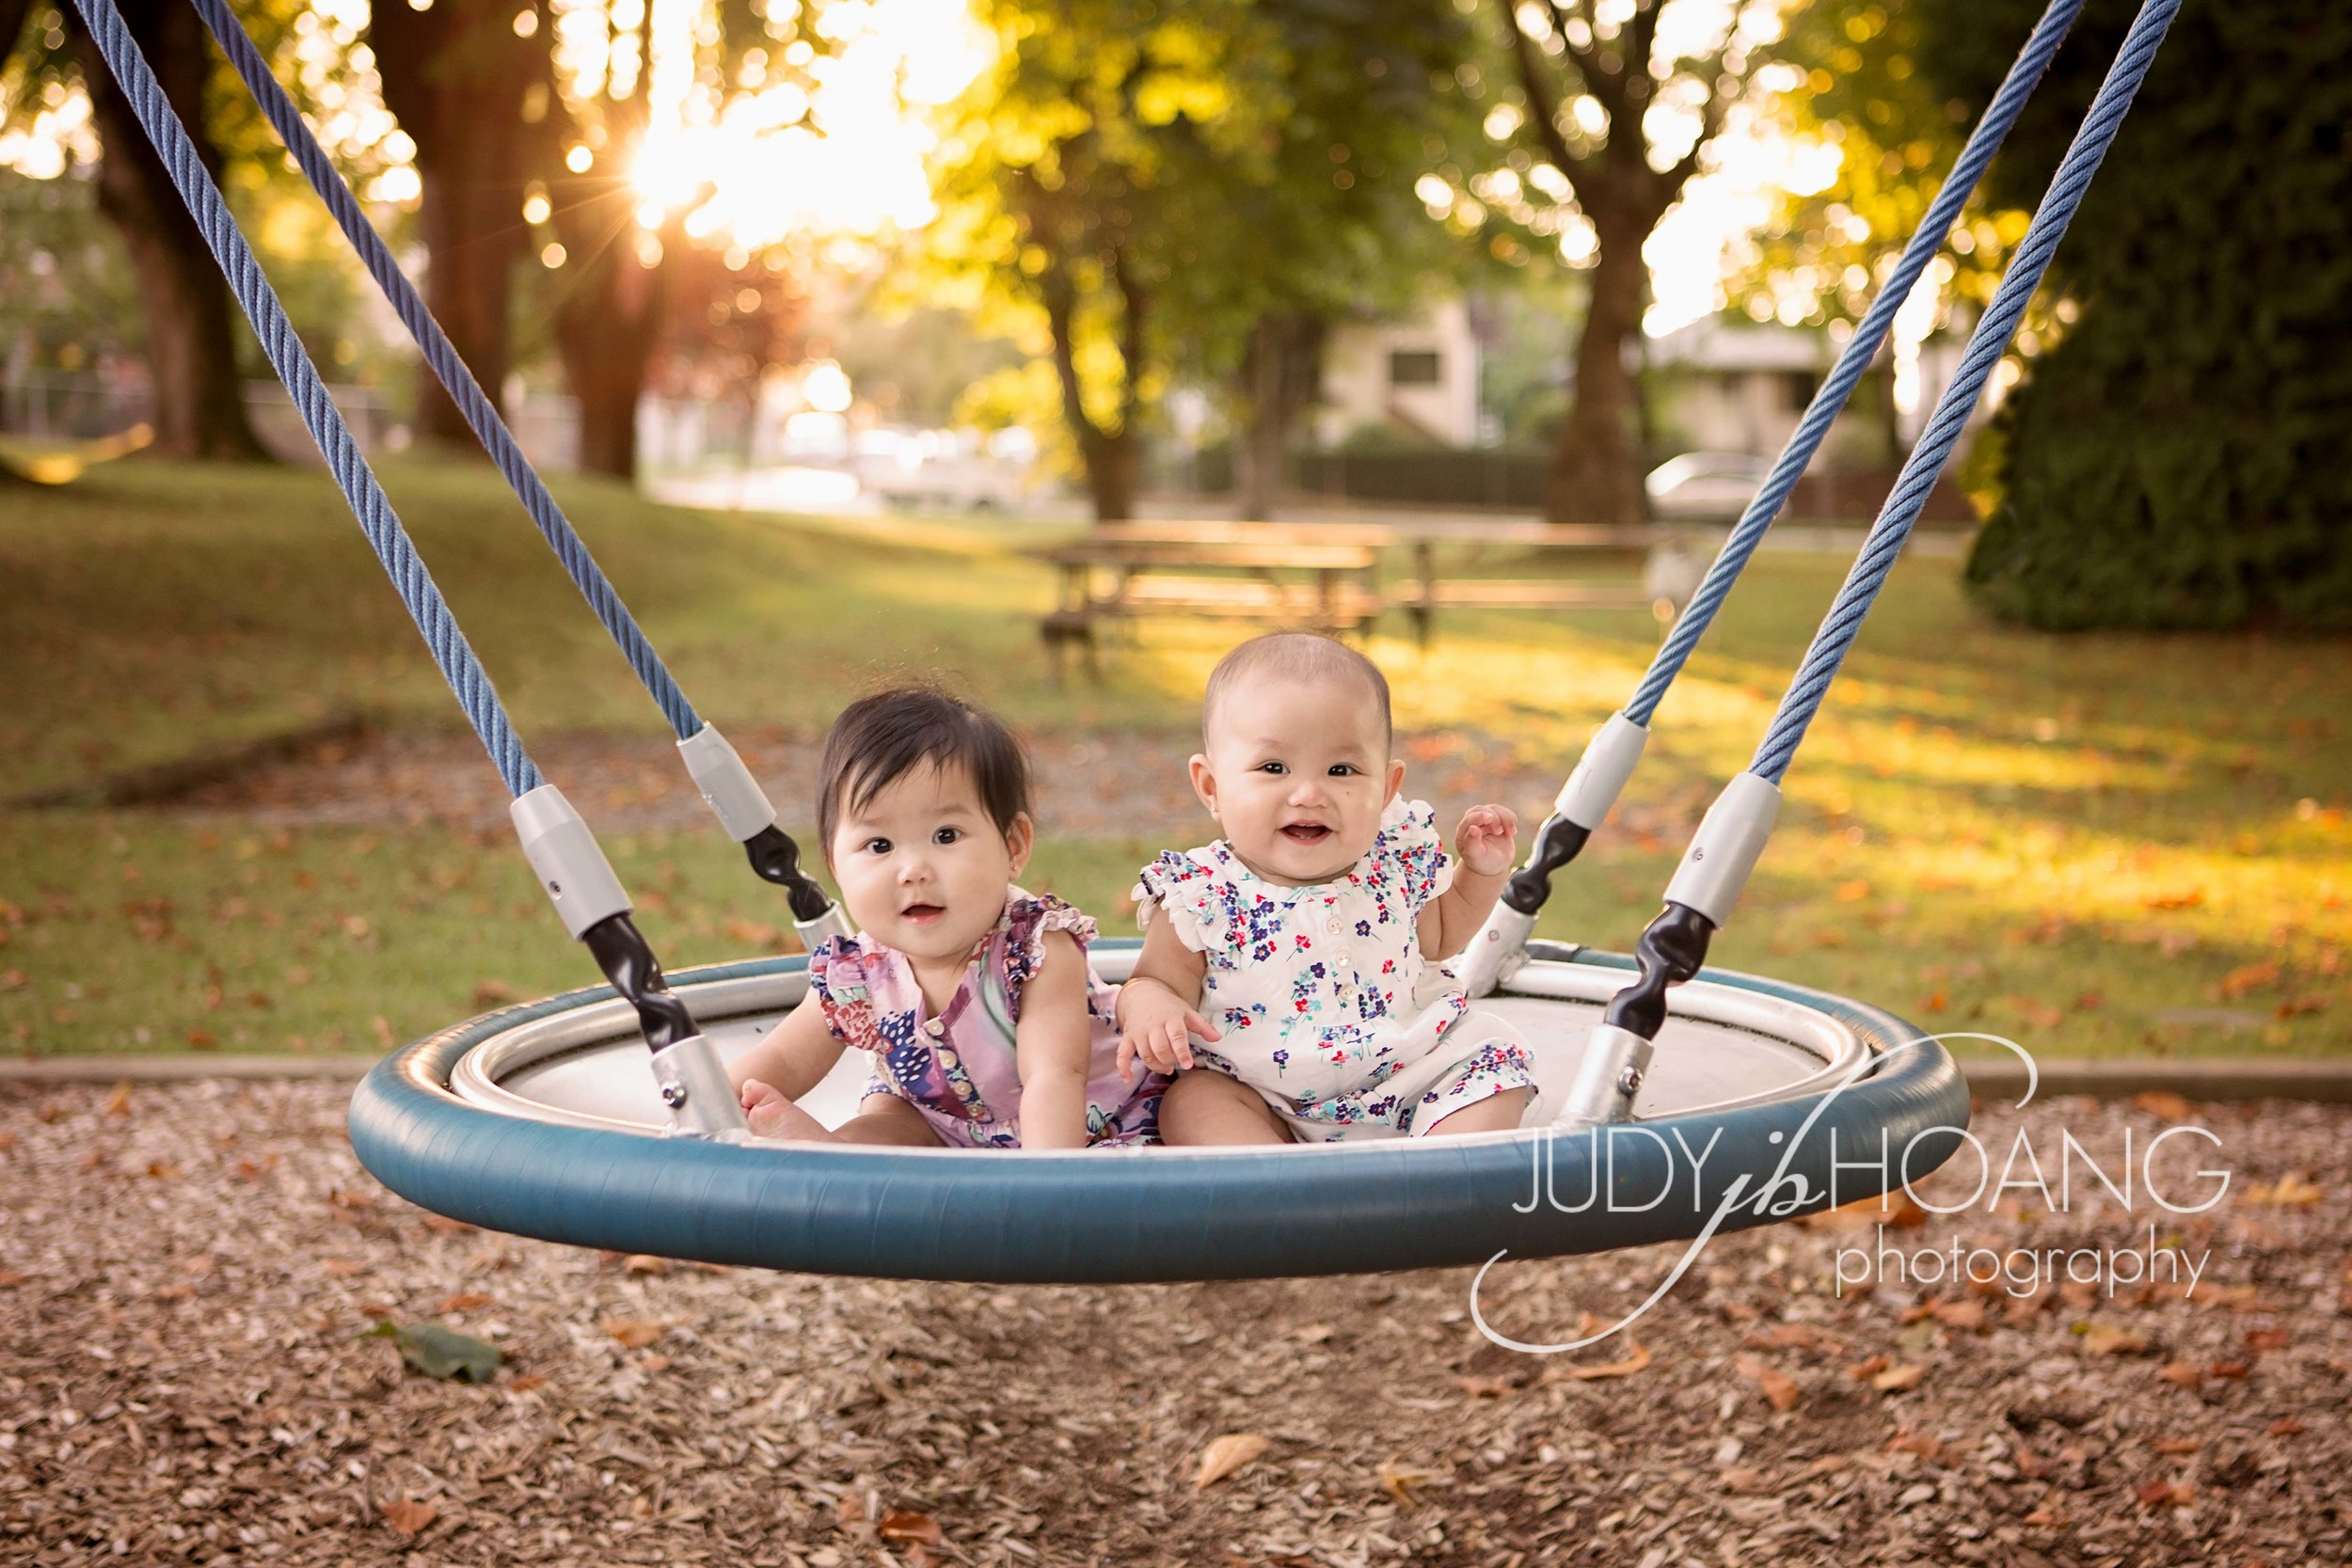 Judy Hoang Photography - Phan Family Portrait-4.JPG